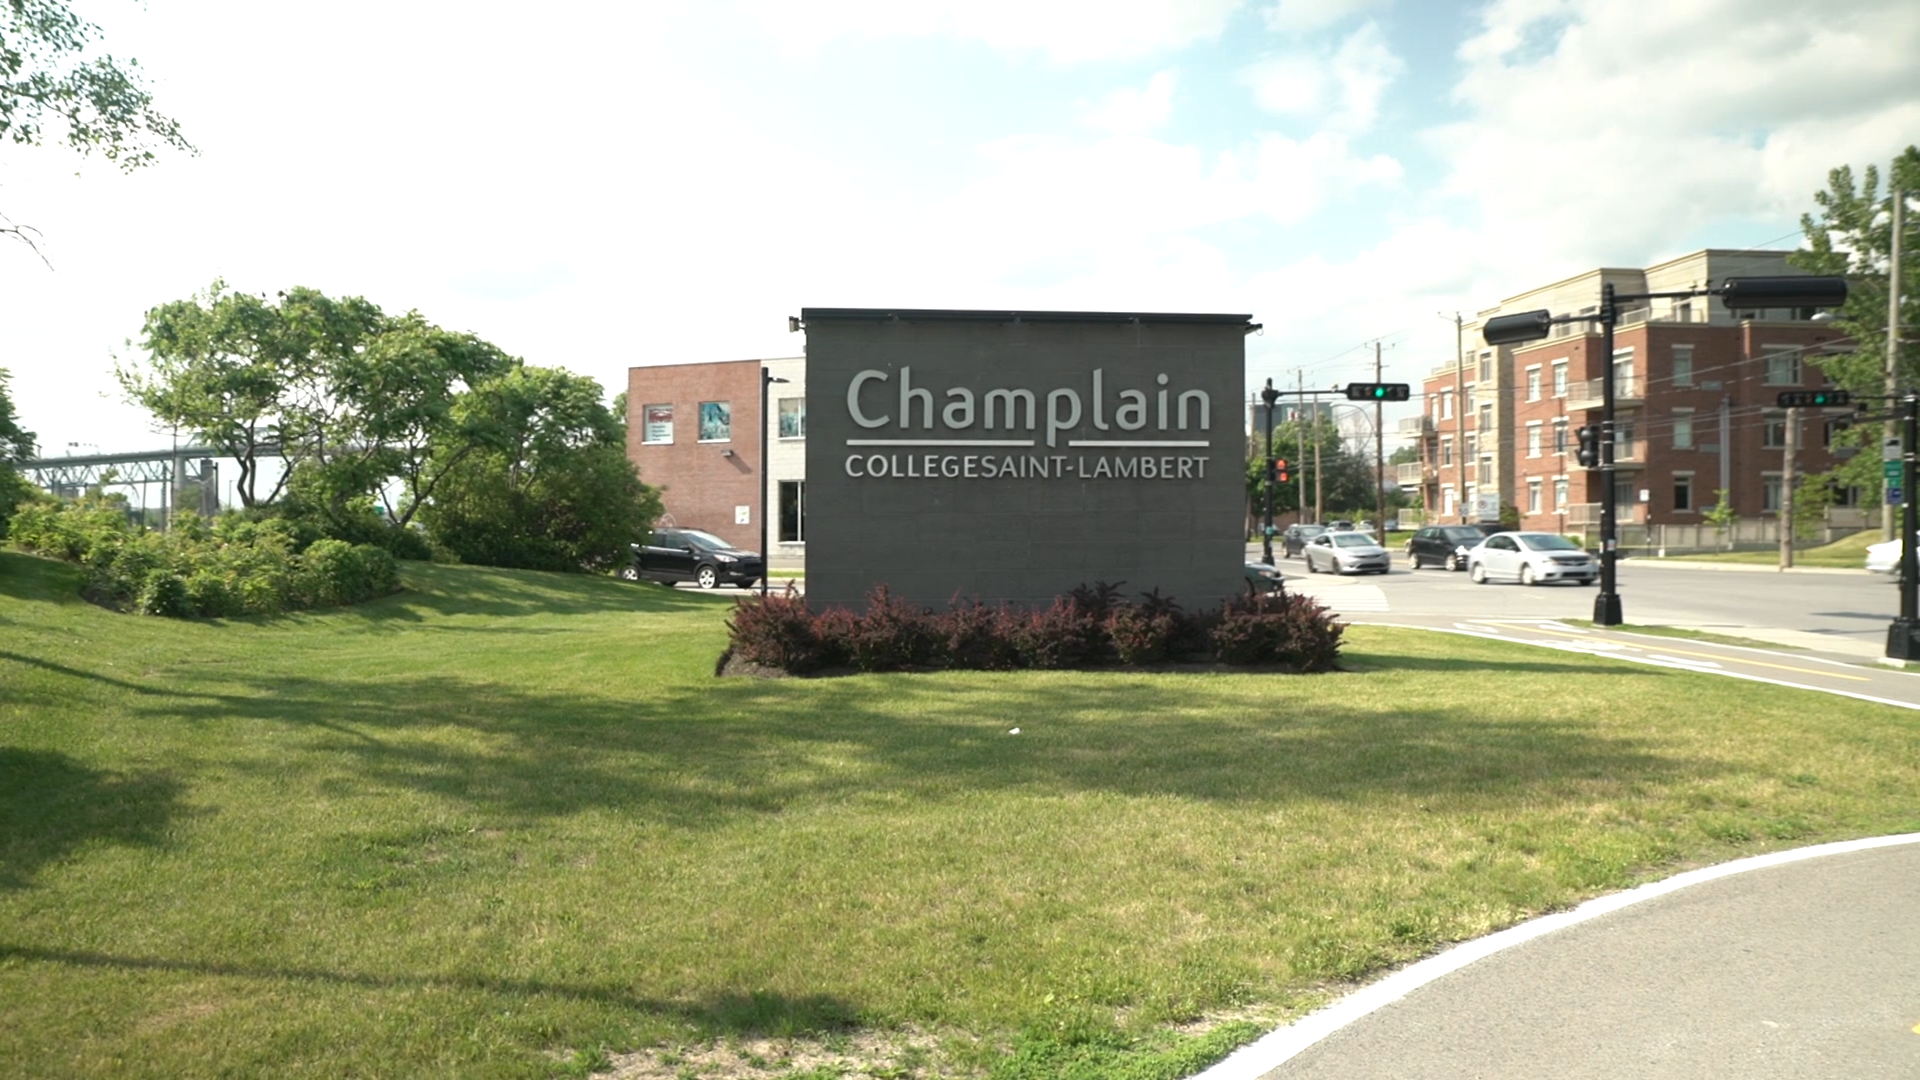 Sign of Champlain College Saint-Lambert campus